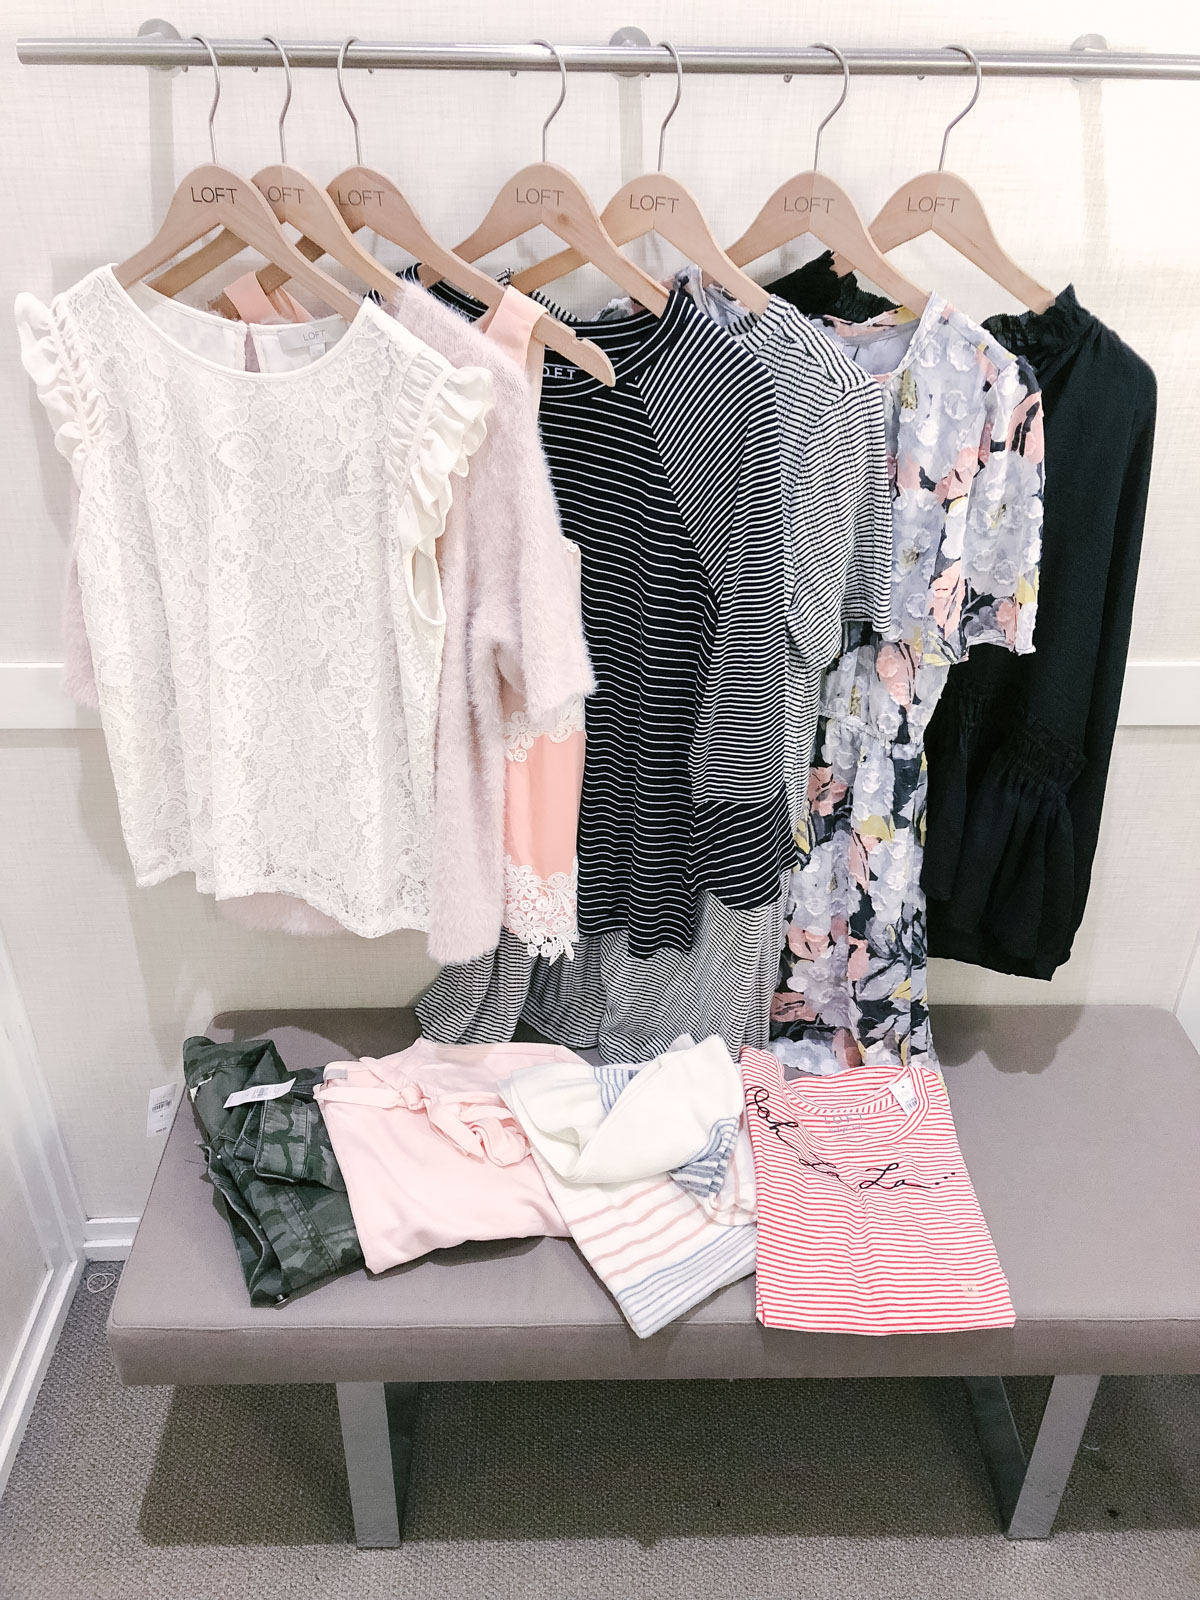 spring loft dressing room reviews - spring loft try-on session | bylaurenm.com